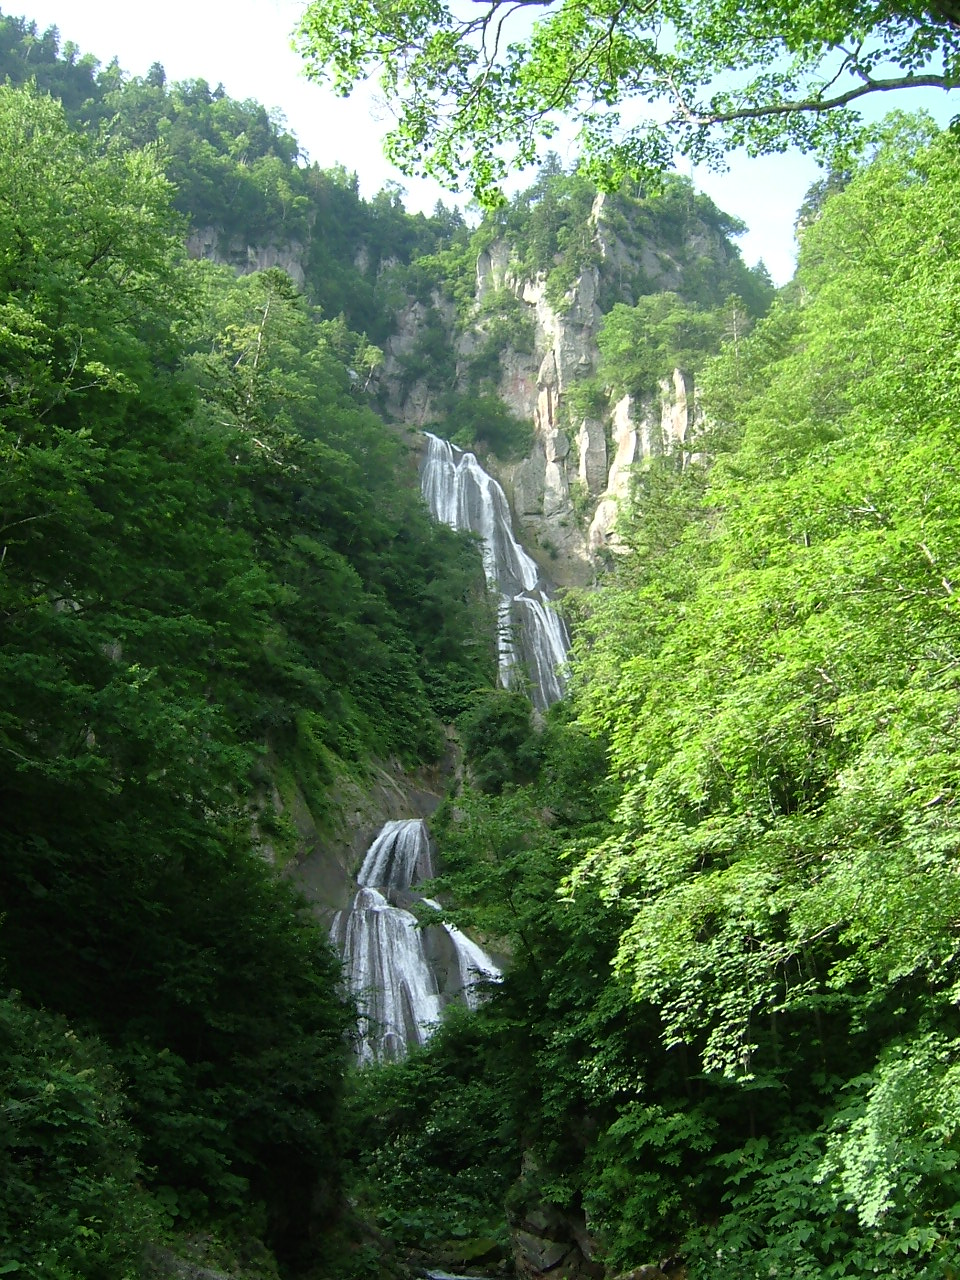 http://upload.wikimedia.org/wikipedia/commons/8/8d/Hagoramo_Waterfall_2005-08.JPG